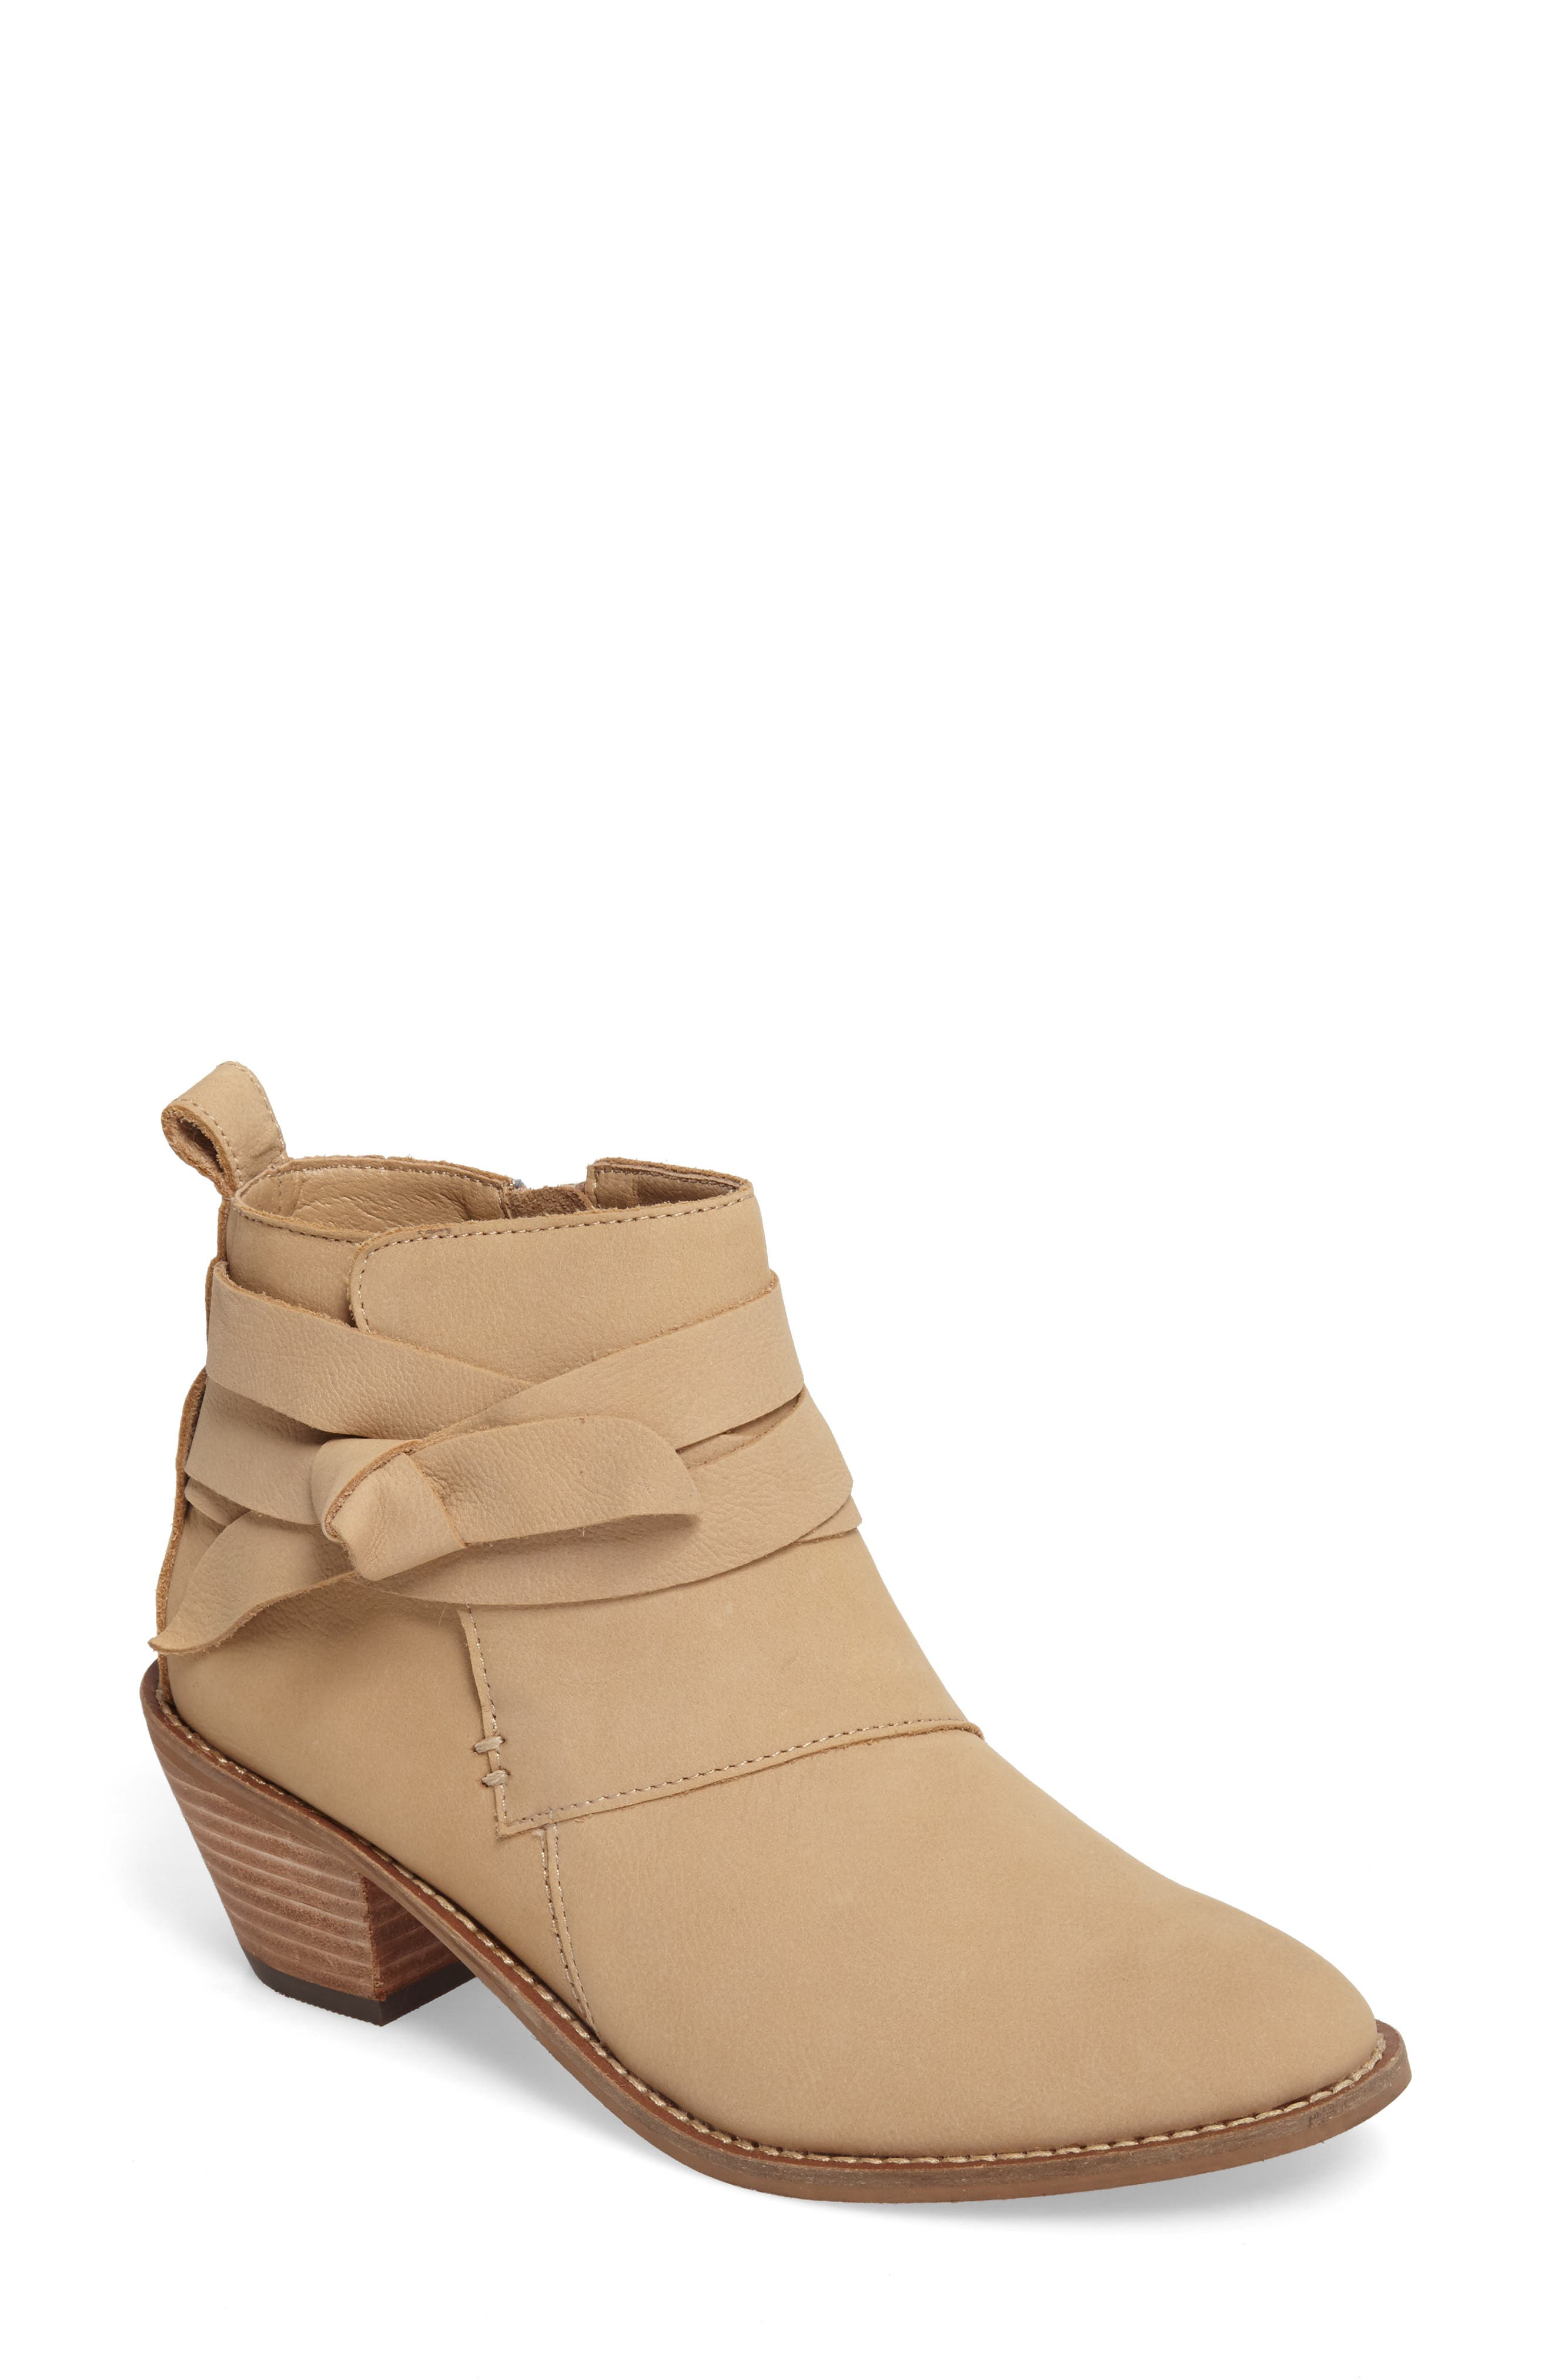 Kelsi Dagger Brooklyn Kingston Bootie (Women)